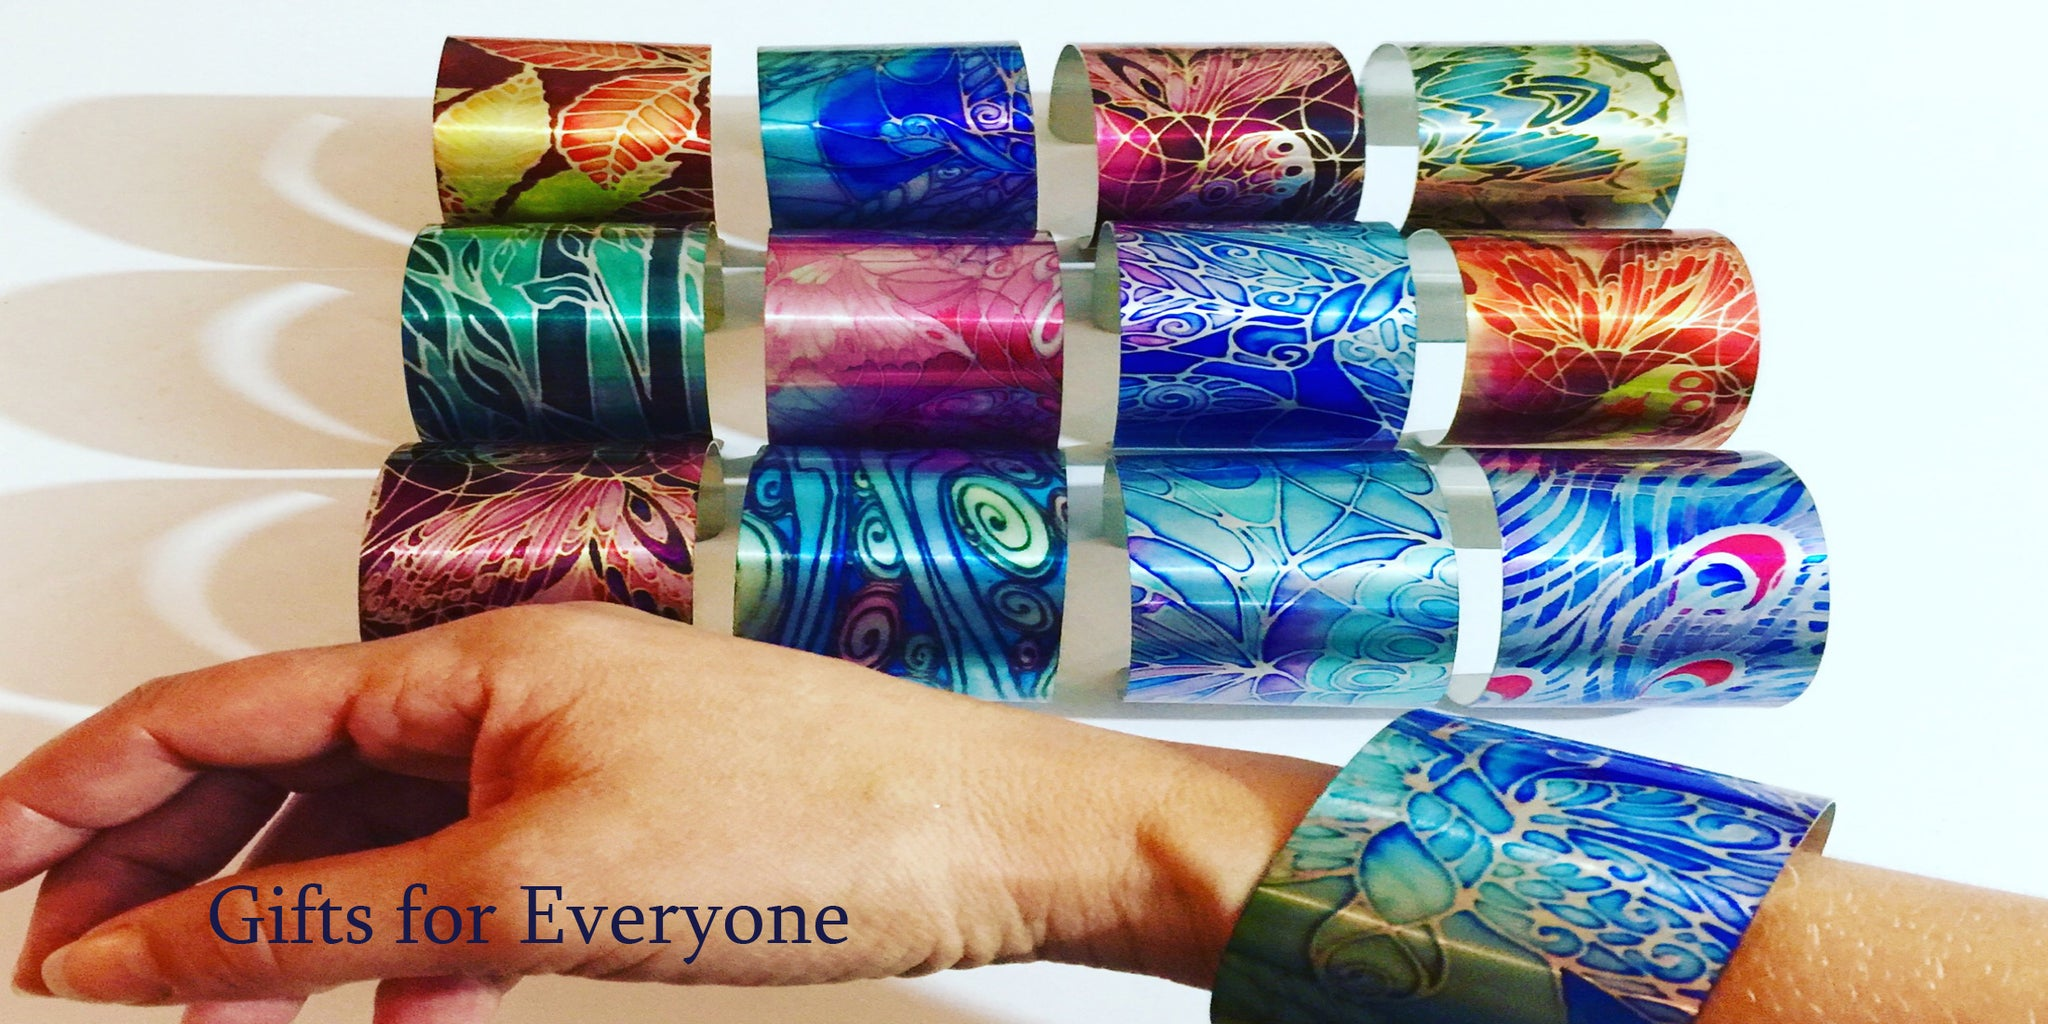 Gifts for Everyone, Bracelets, Mugs, Coasters, Glasses Cases, Phone covers, Meikie Designs